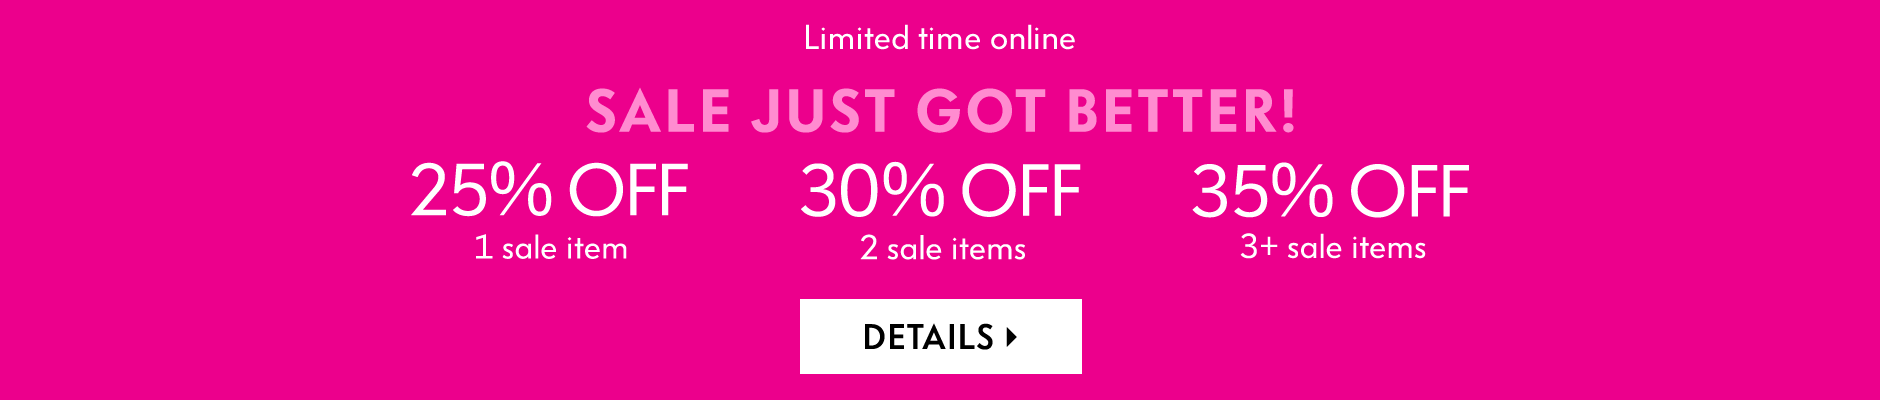 Limited time online: Sale just got better! 25% off 1 sale item - 30% off 2 sale items - 35% off 3+ sale items